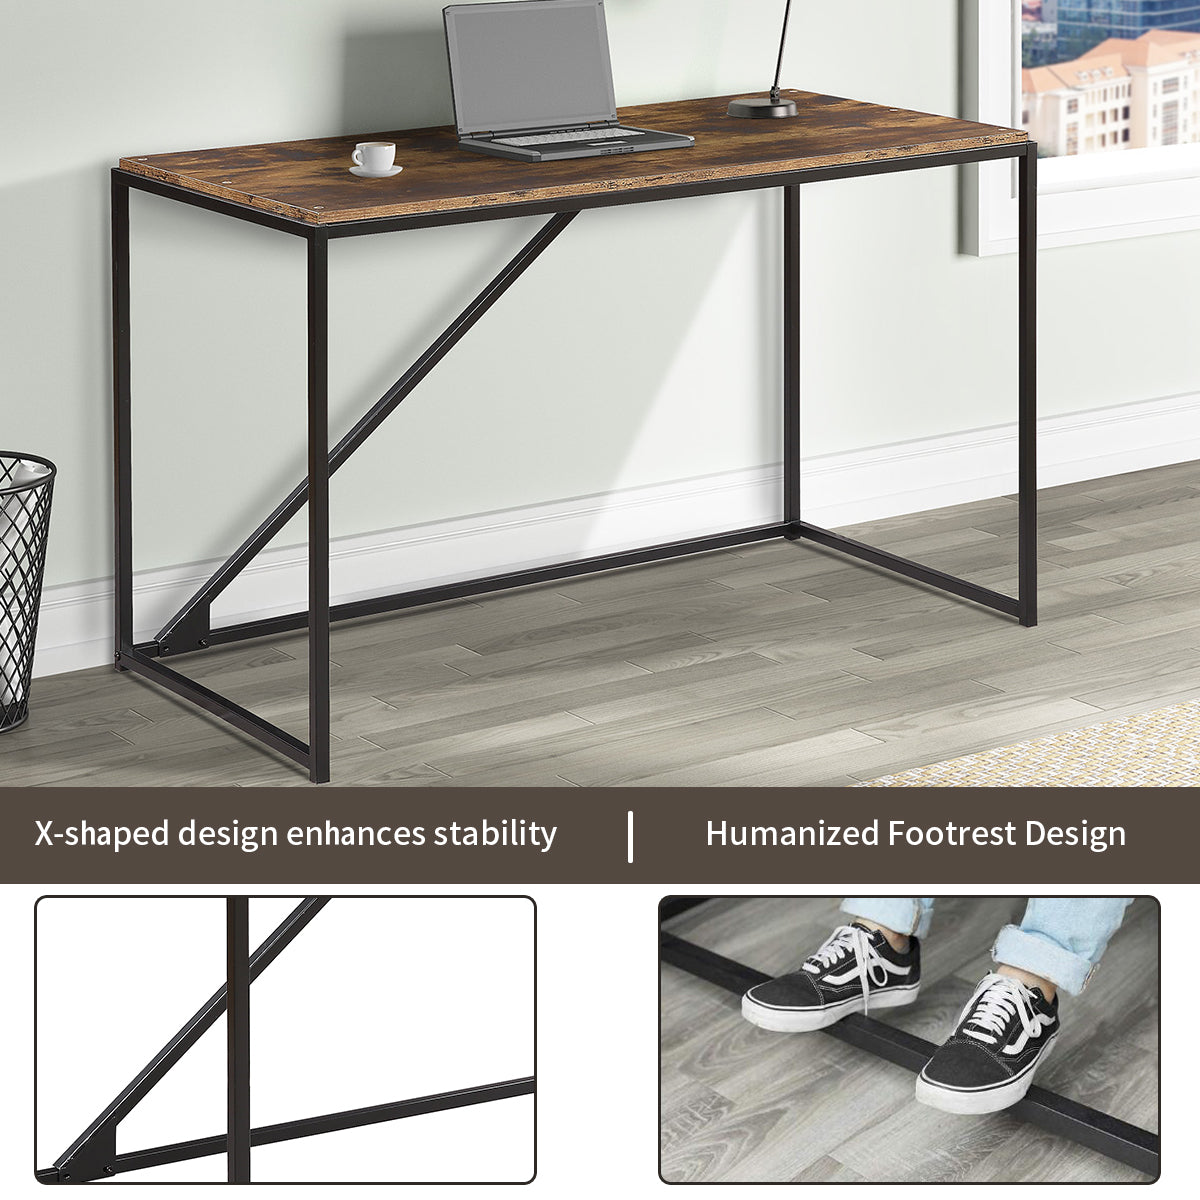 Industrial 46-Inch Computer Desk, Small Desk Home Office Study Desk Metal Frame, Modern Simple Laptop Table BH194171